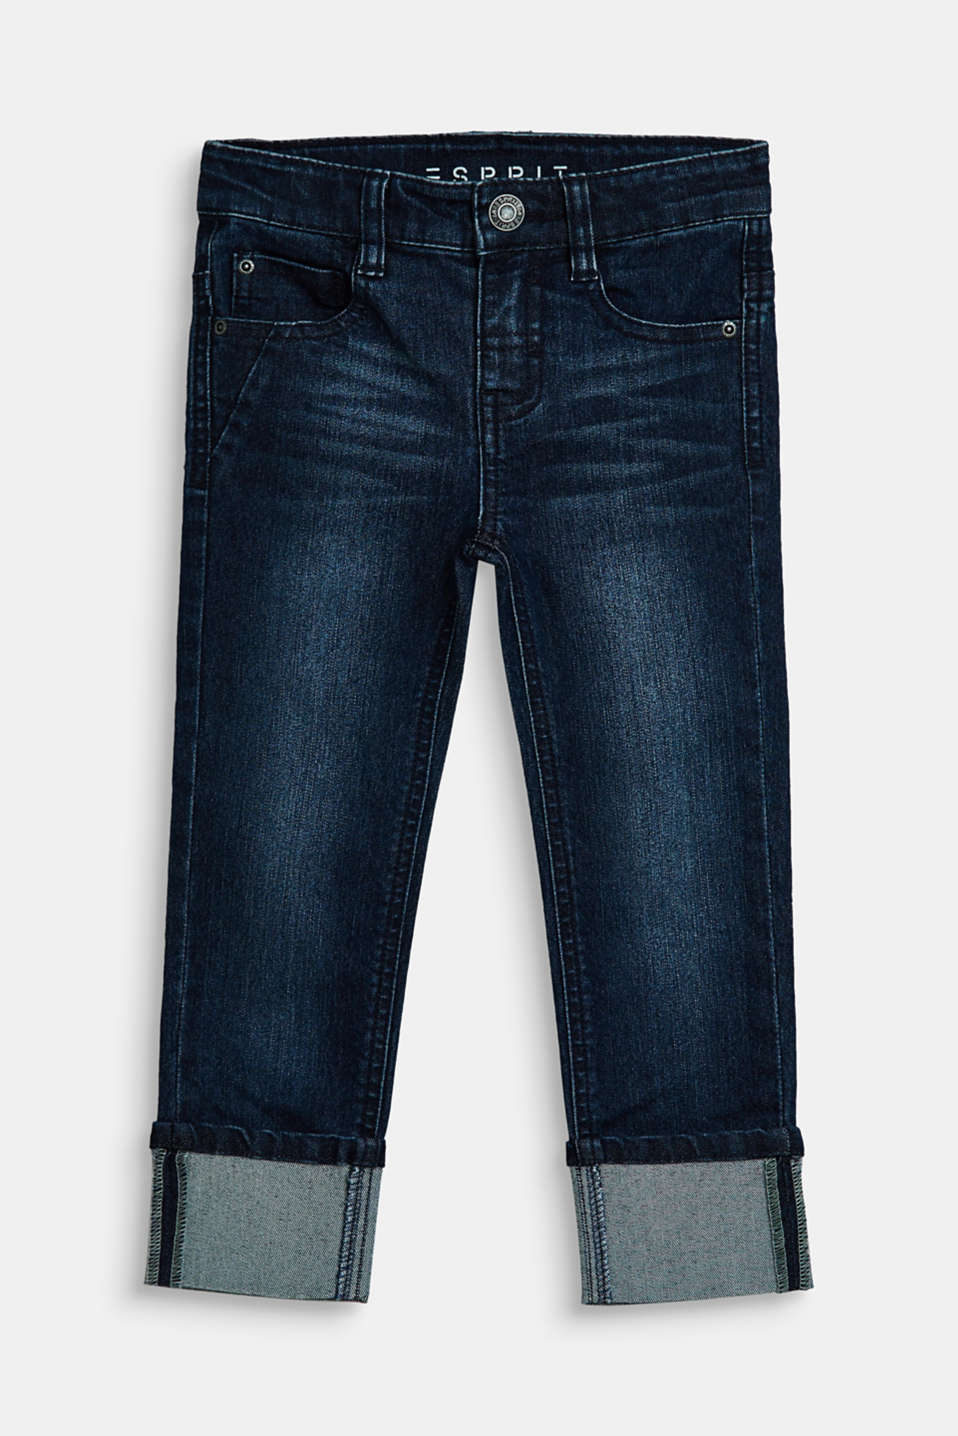 Esprit - Stretch jeans with fixed turn-up hems